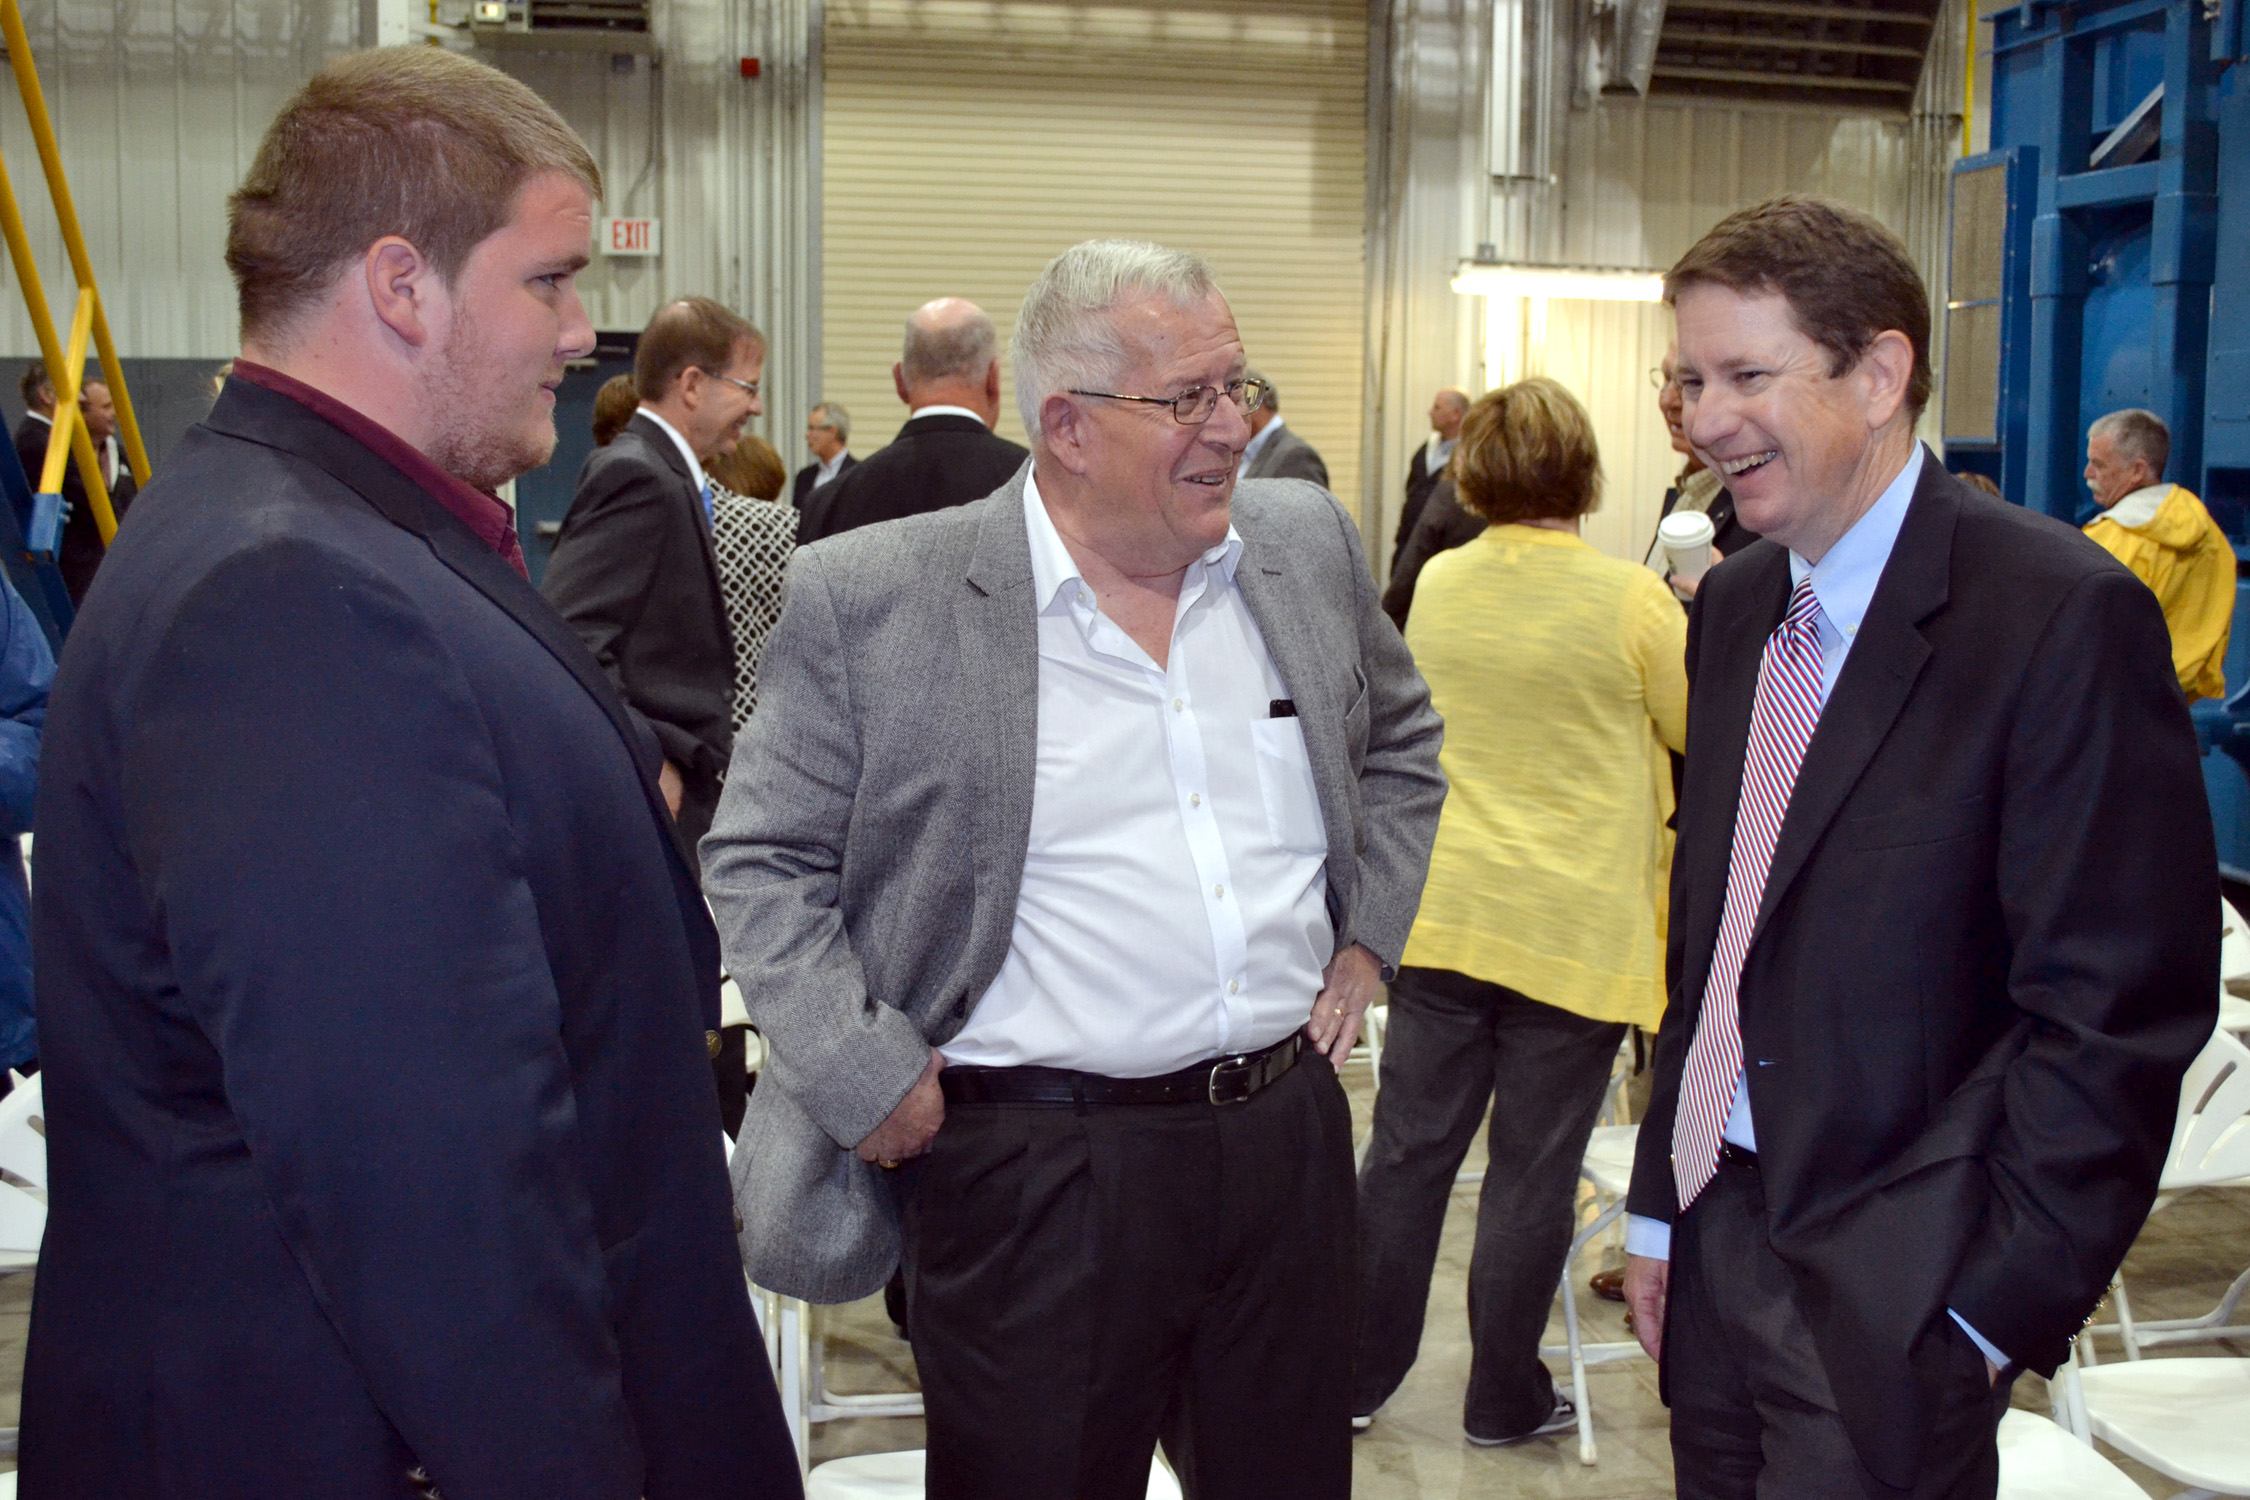 (L to R) Daniel Goodman, grandson of the late Jack Goodman, and his father Marc Goodman, share a laugh with Stuart Lowry, CEO of Sunflower Electric, at the Goodman Energy Center dedication.